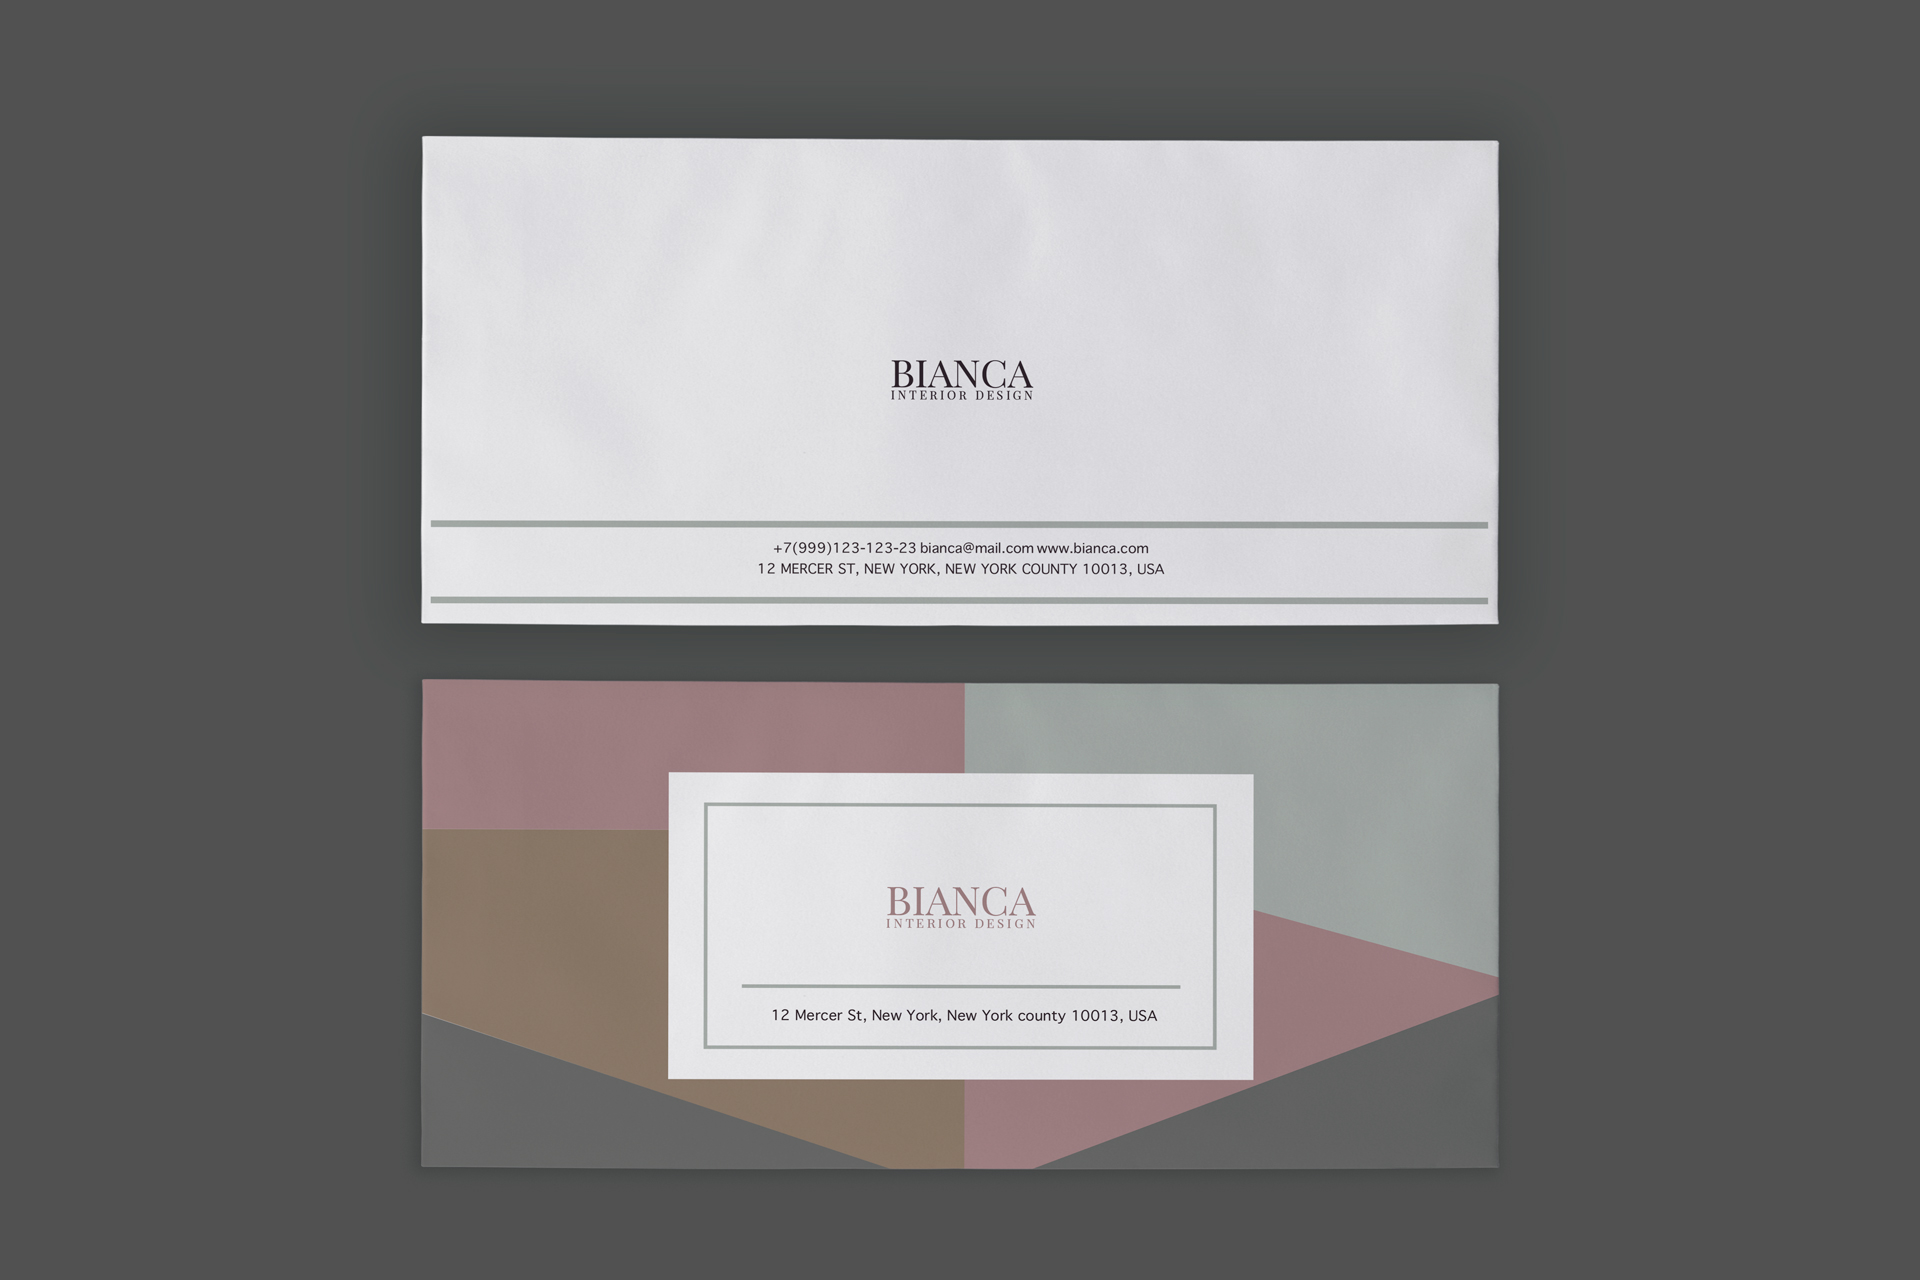 Branding design for interior designer